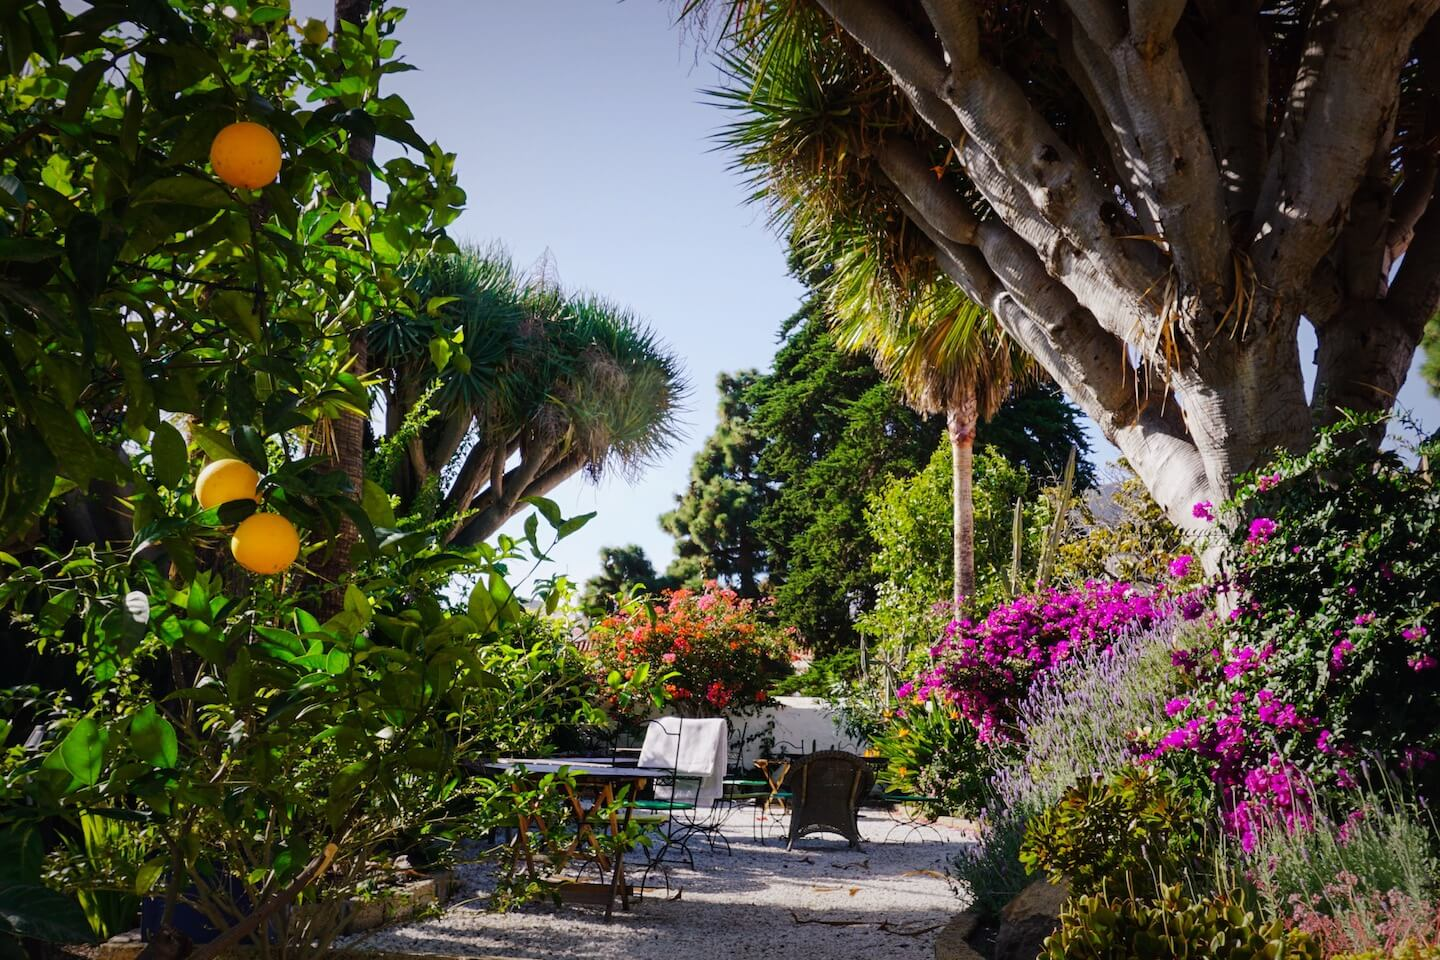 Where to Stay in Tenerife for Hiking - Casa Arona Rural